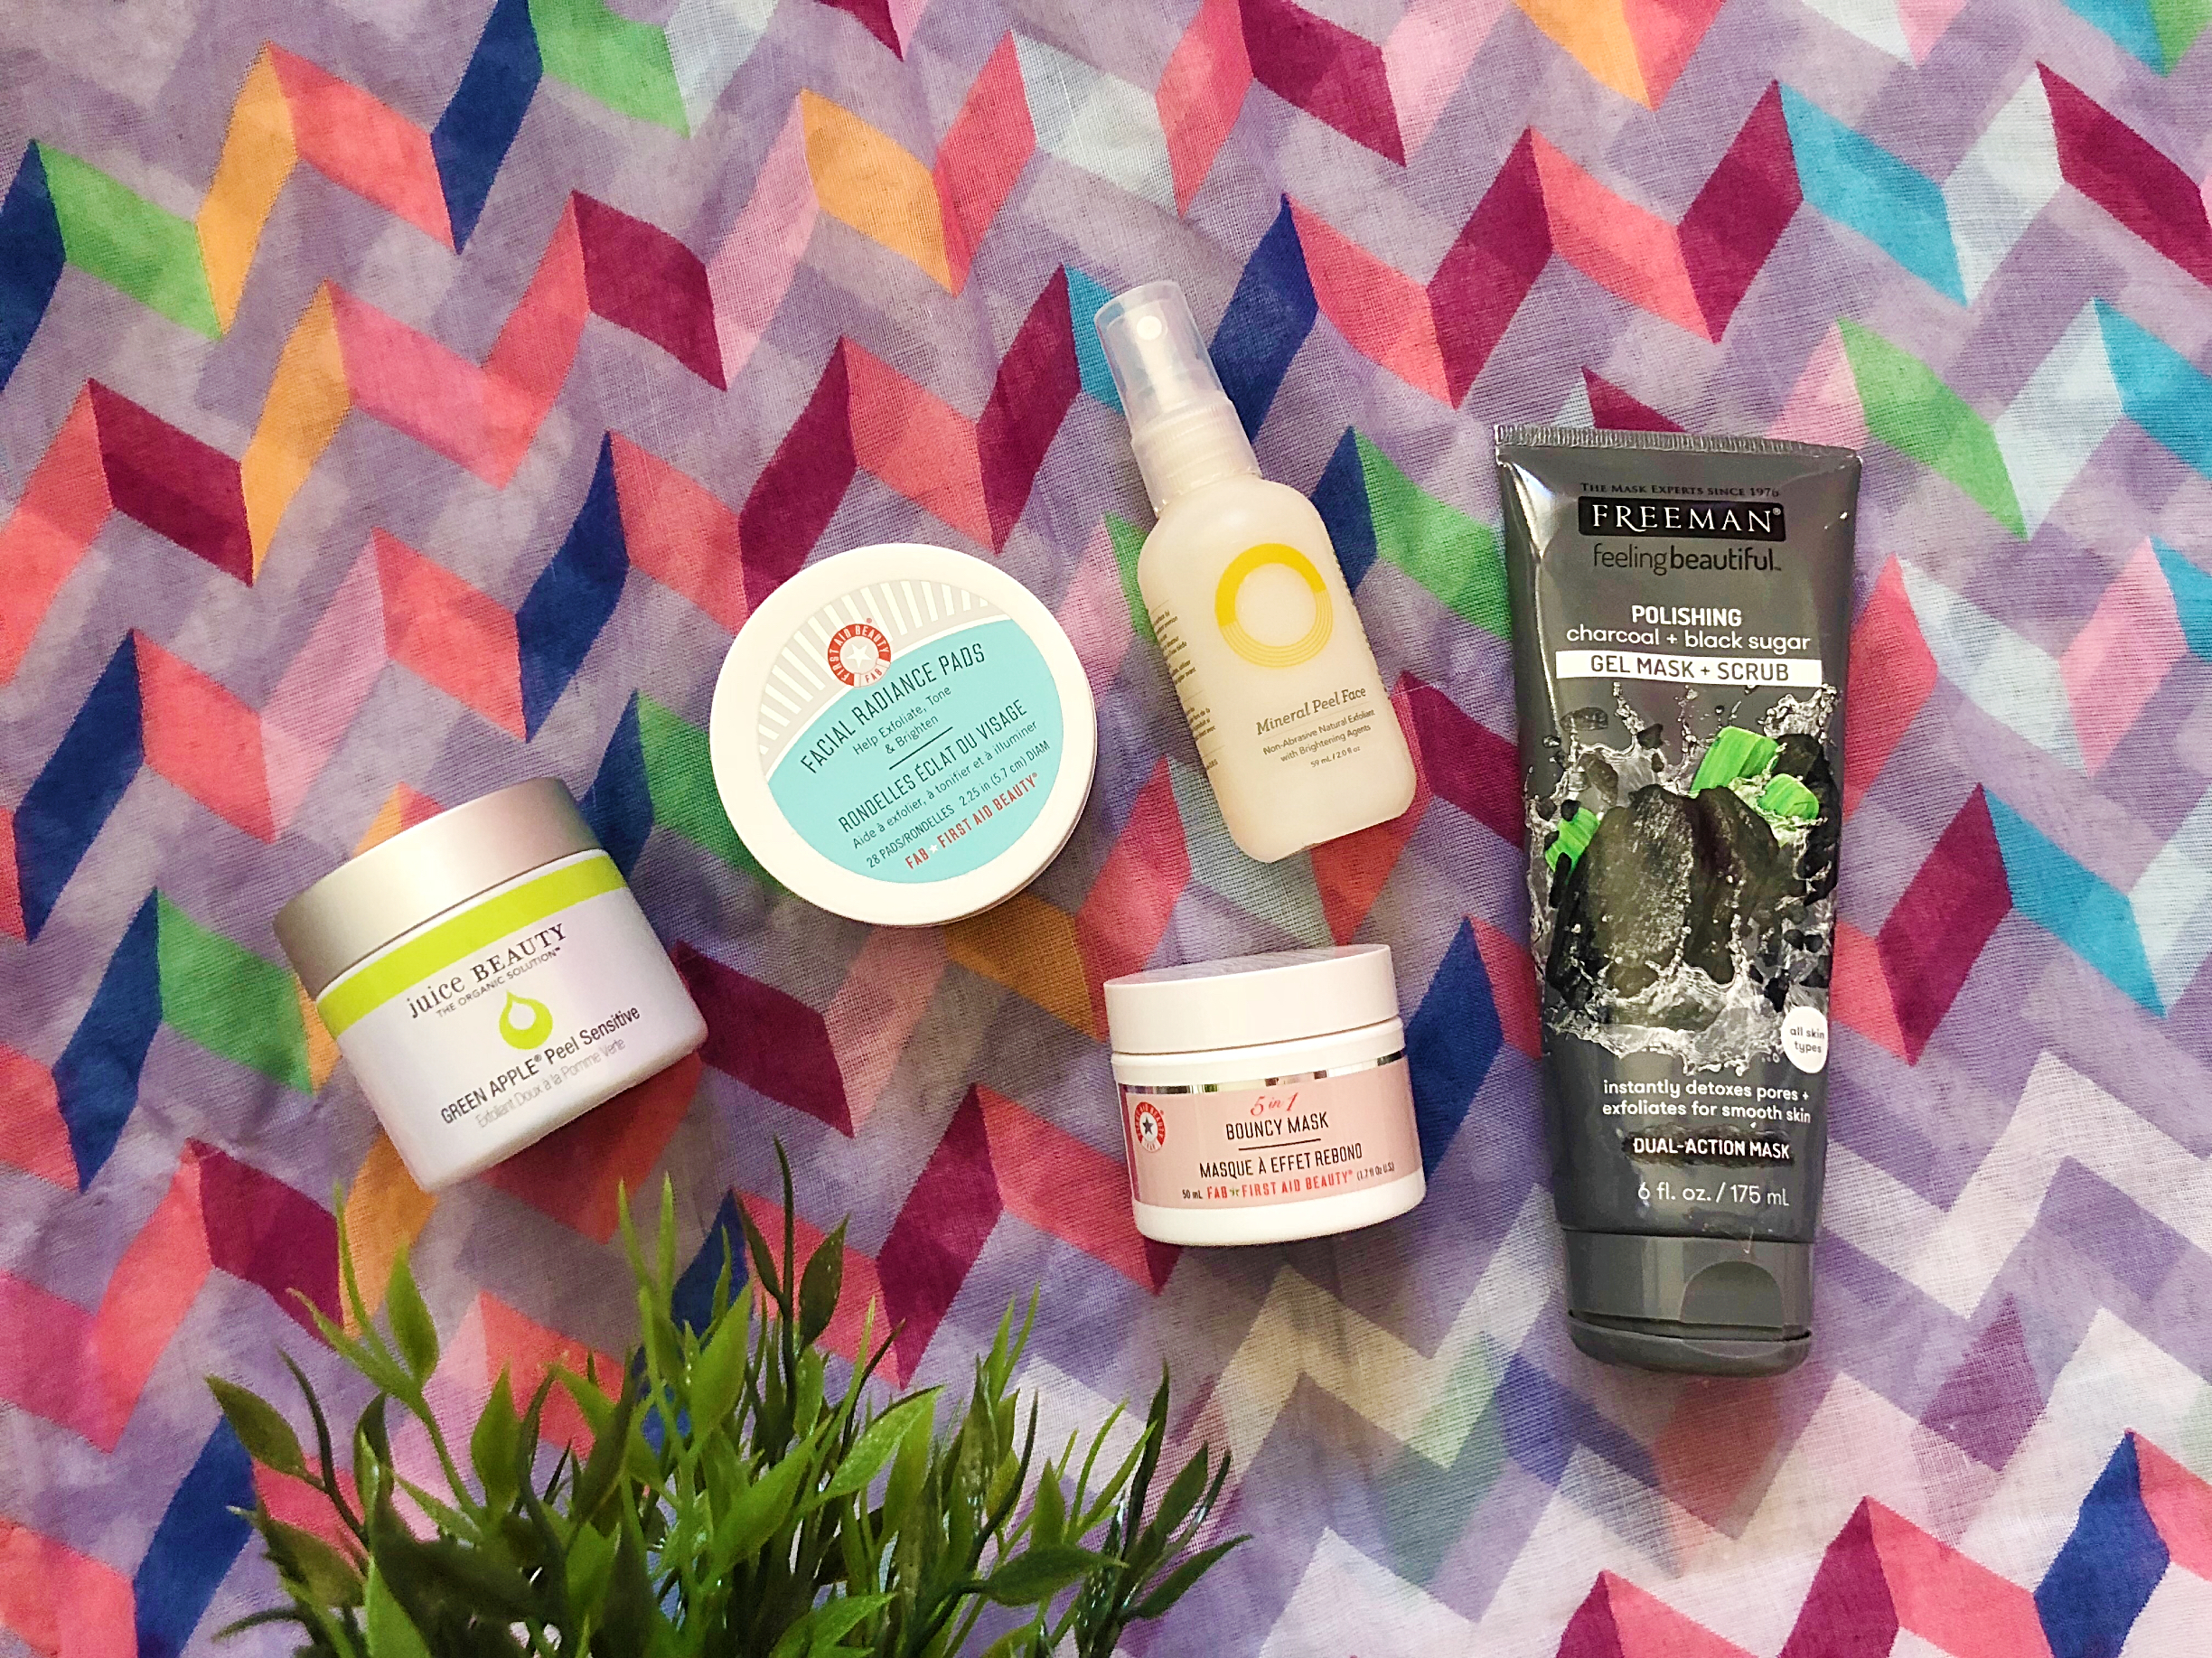 More Favorites!  First Aid Beauty Facial Radiance Pads ,  First Aid Beauty 5-in-1 Bouncy Mask ,  Juice Beauty Green Apple Sensitive Peel ,  O.R.G. Skincare Mineral Peel Face Exfoliator ,  Freeman Polishing Charcoal and Black Sugar